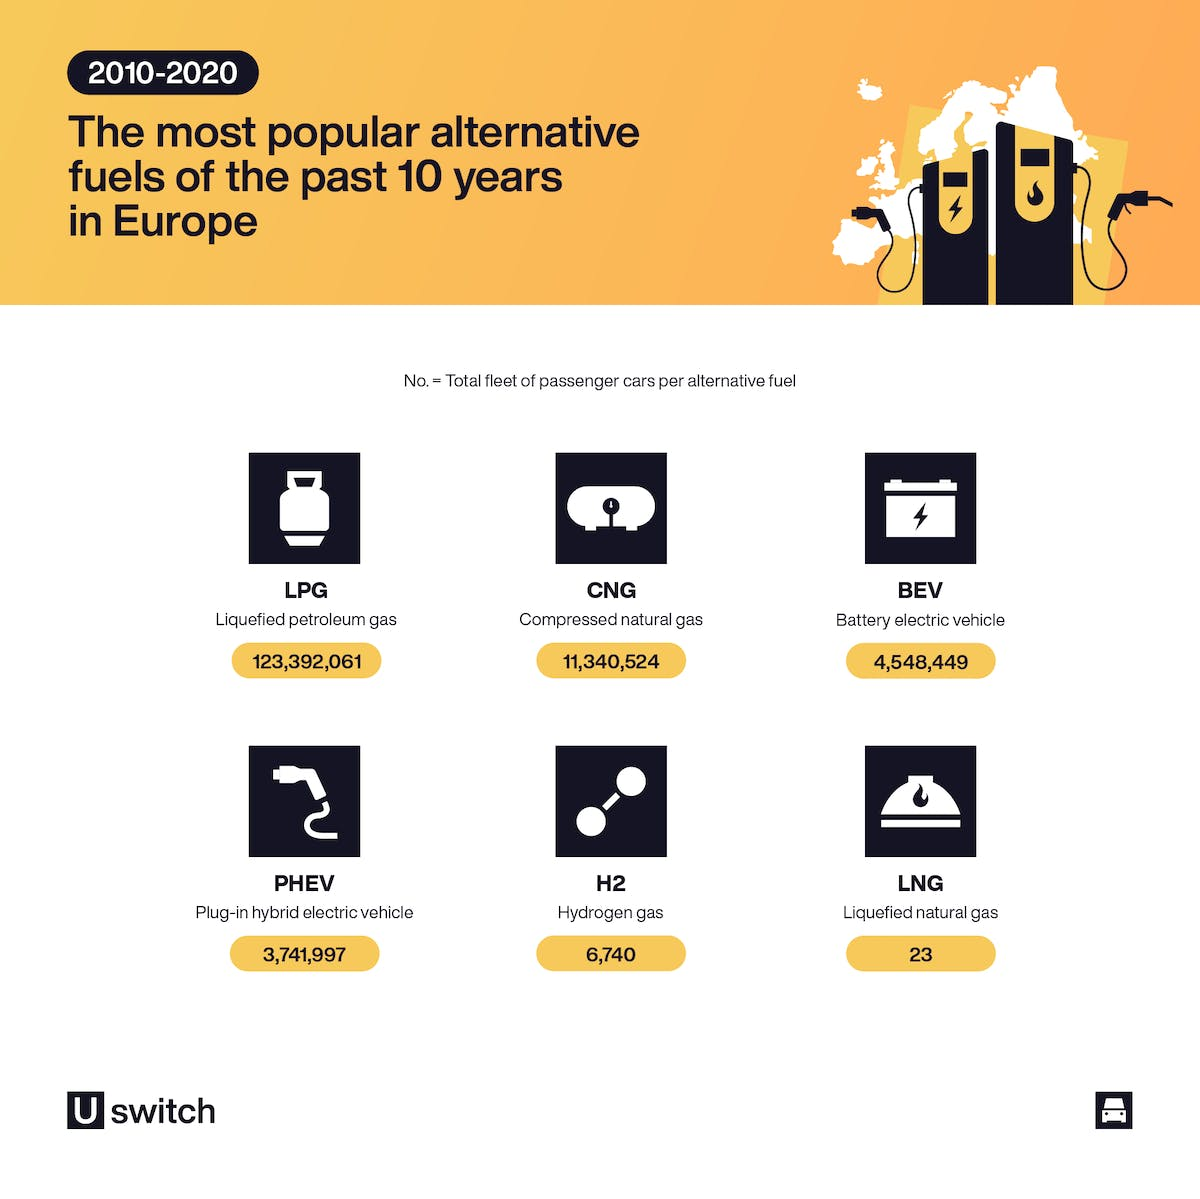 Infographic highlighting the most popular alternative fuels of the past ten years in Europe.